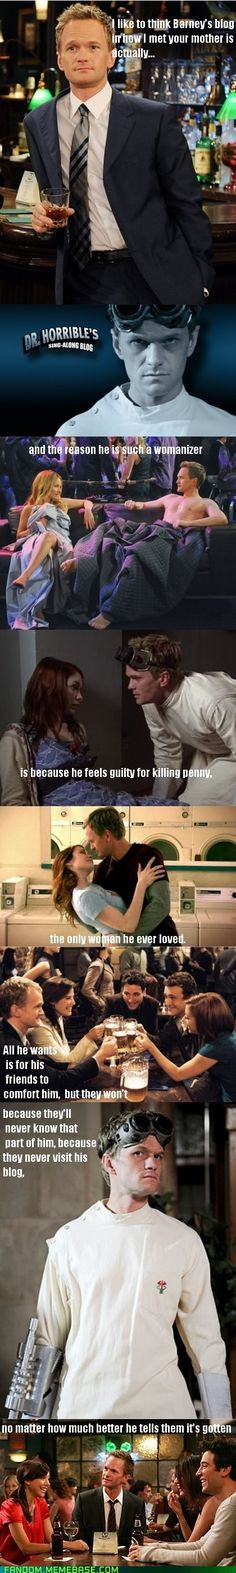 HIMYM/ Dr. Horrible